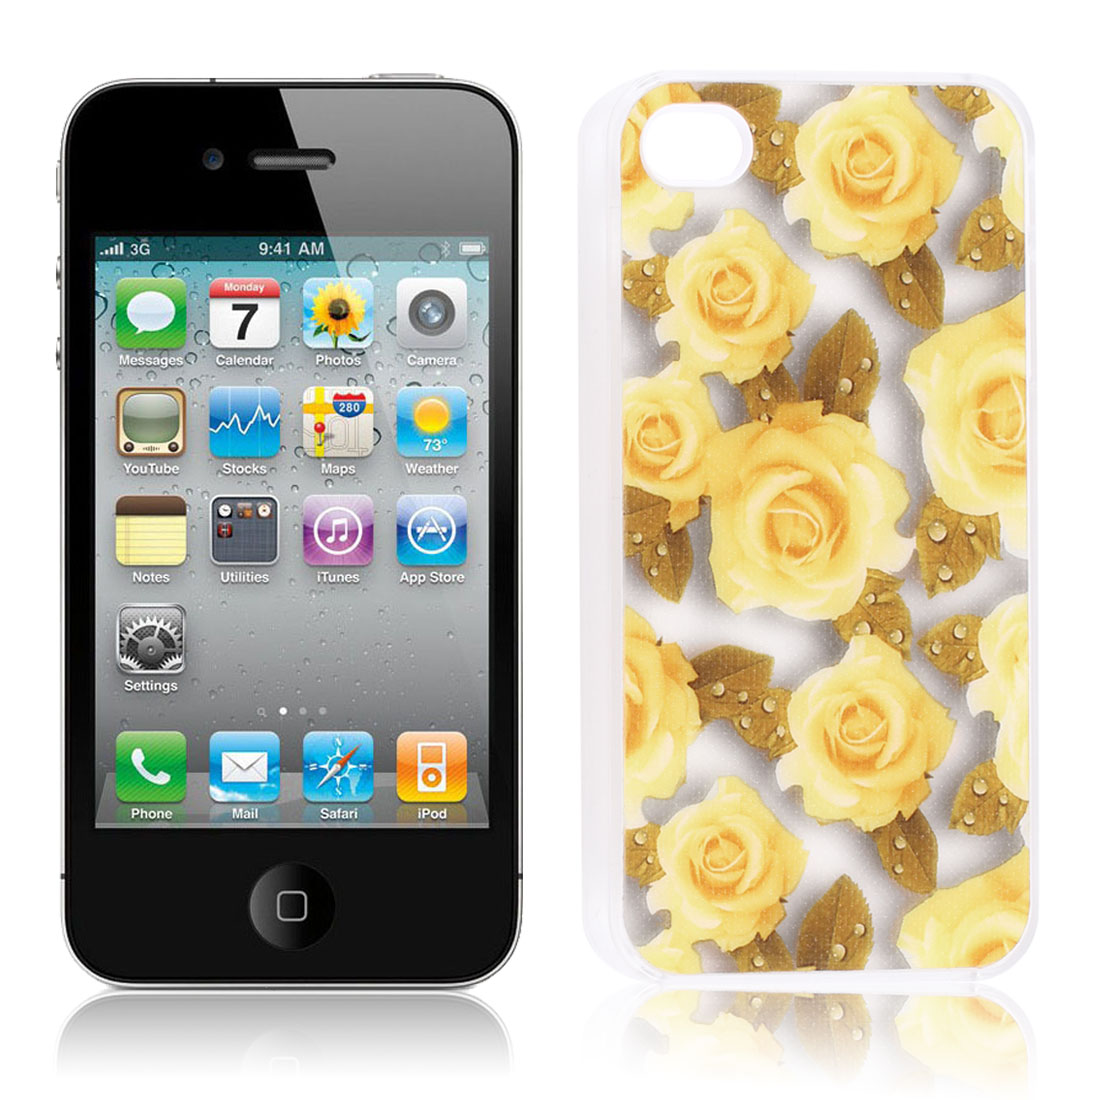 Glittery Powder Yellow Rose Print Hard Back Case Cover for iPhone 4G 4S 4 4GS